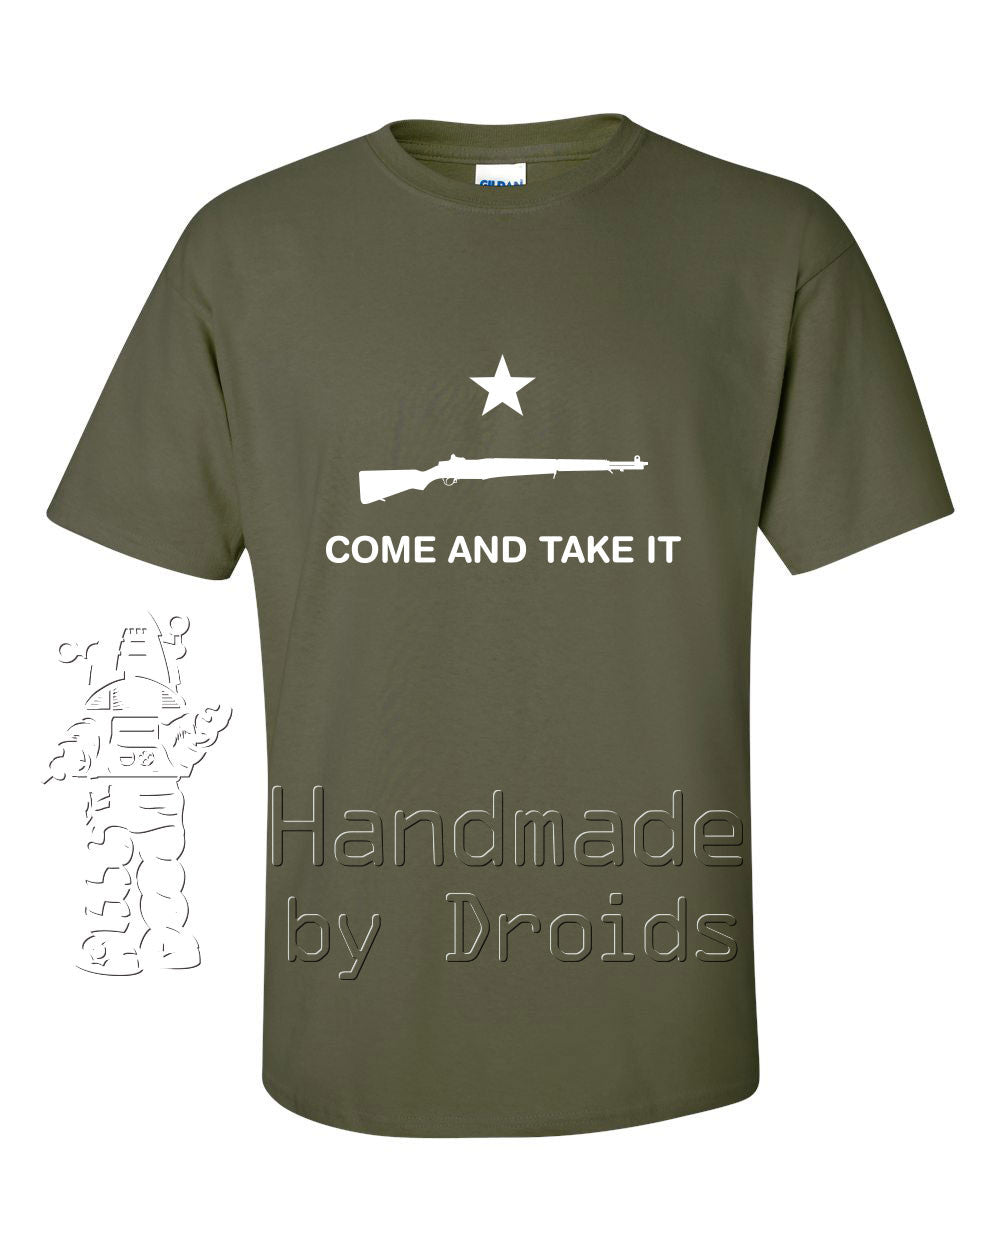 """COME AND TAKE IT"" (M1 Garand) Military Green T-shirt"